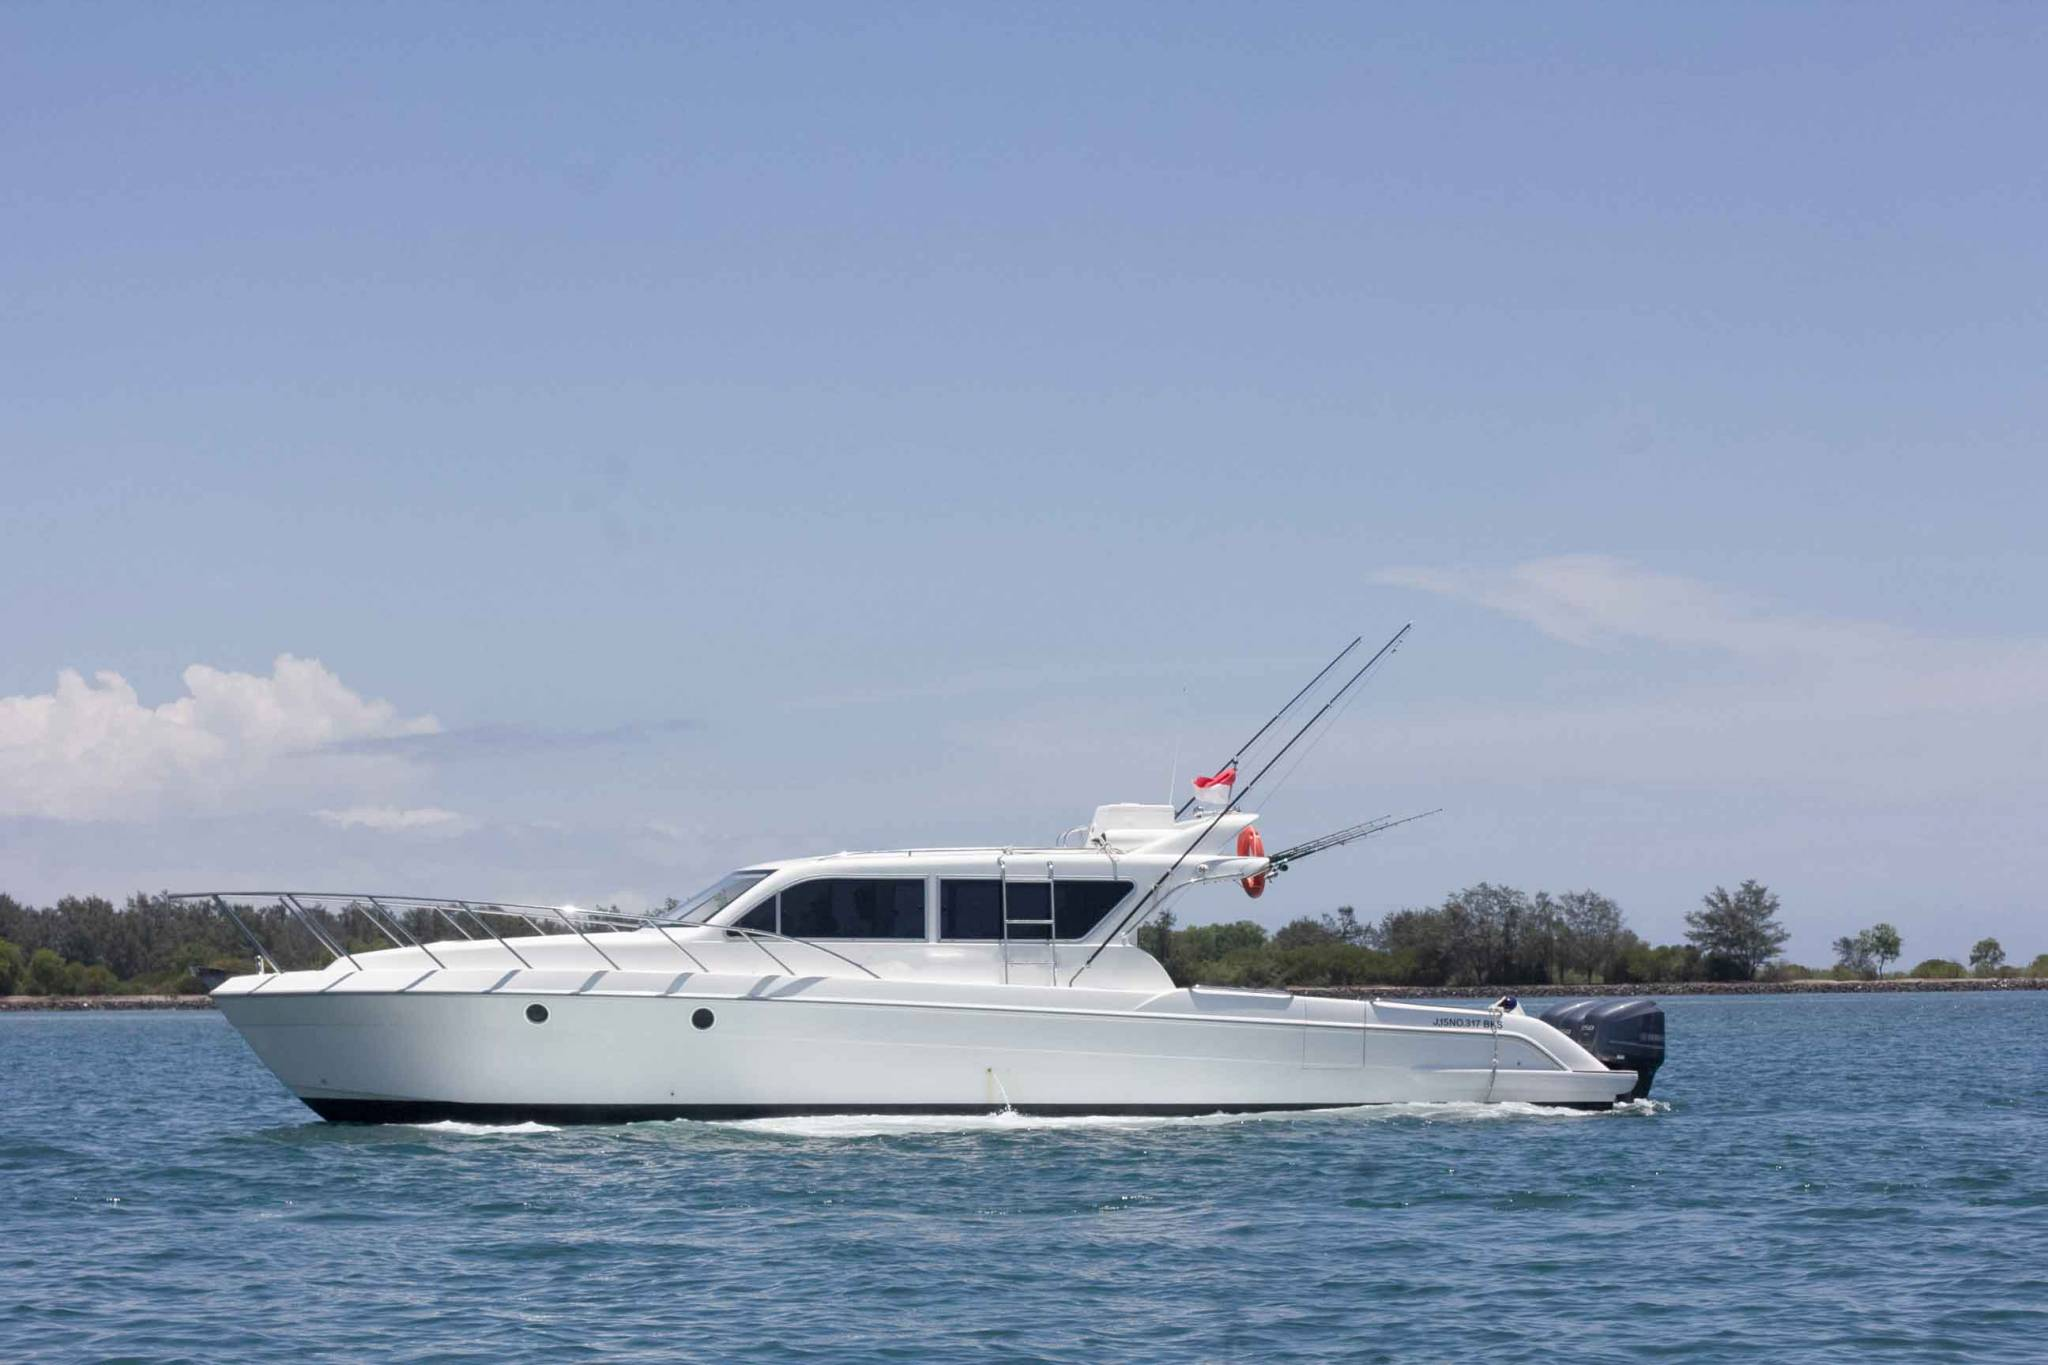 Blue Marlin 2 sailing in Indonesia